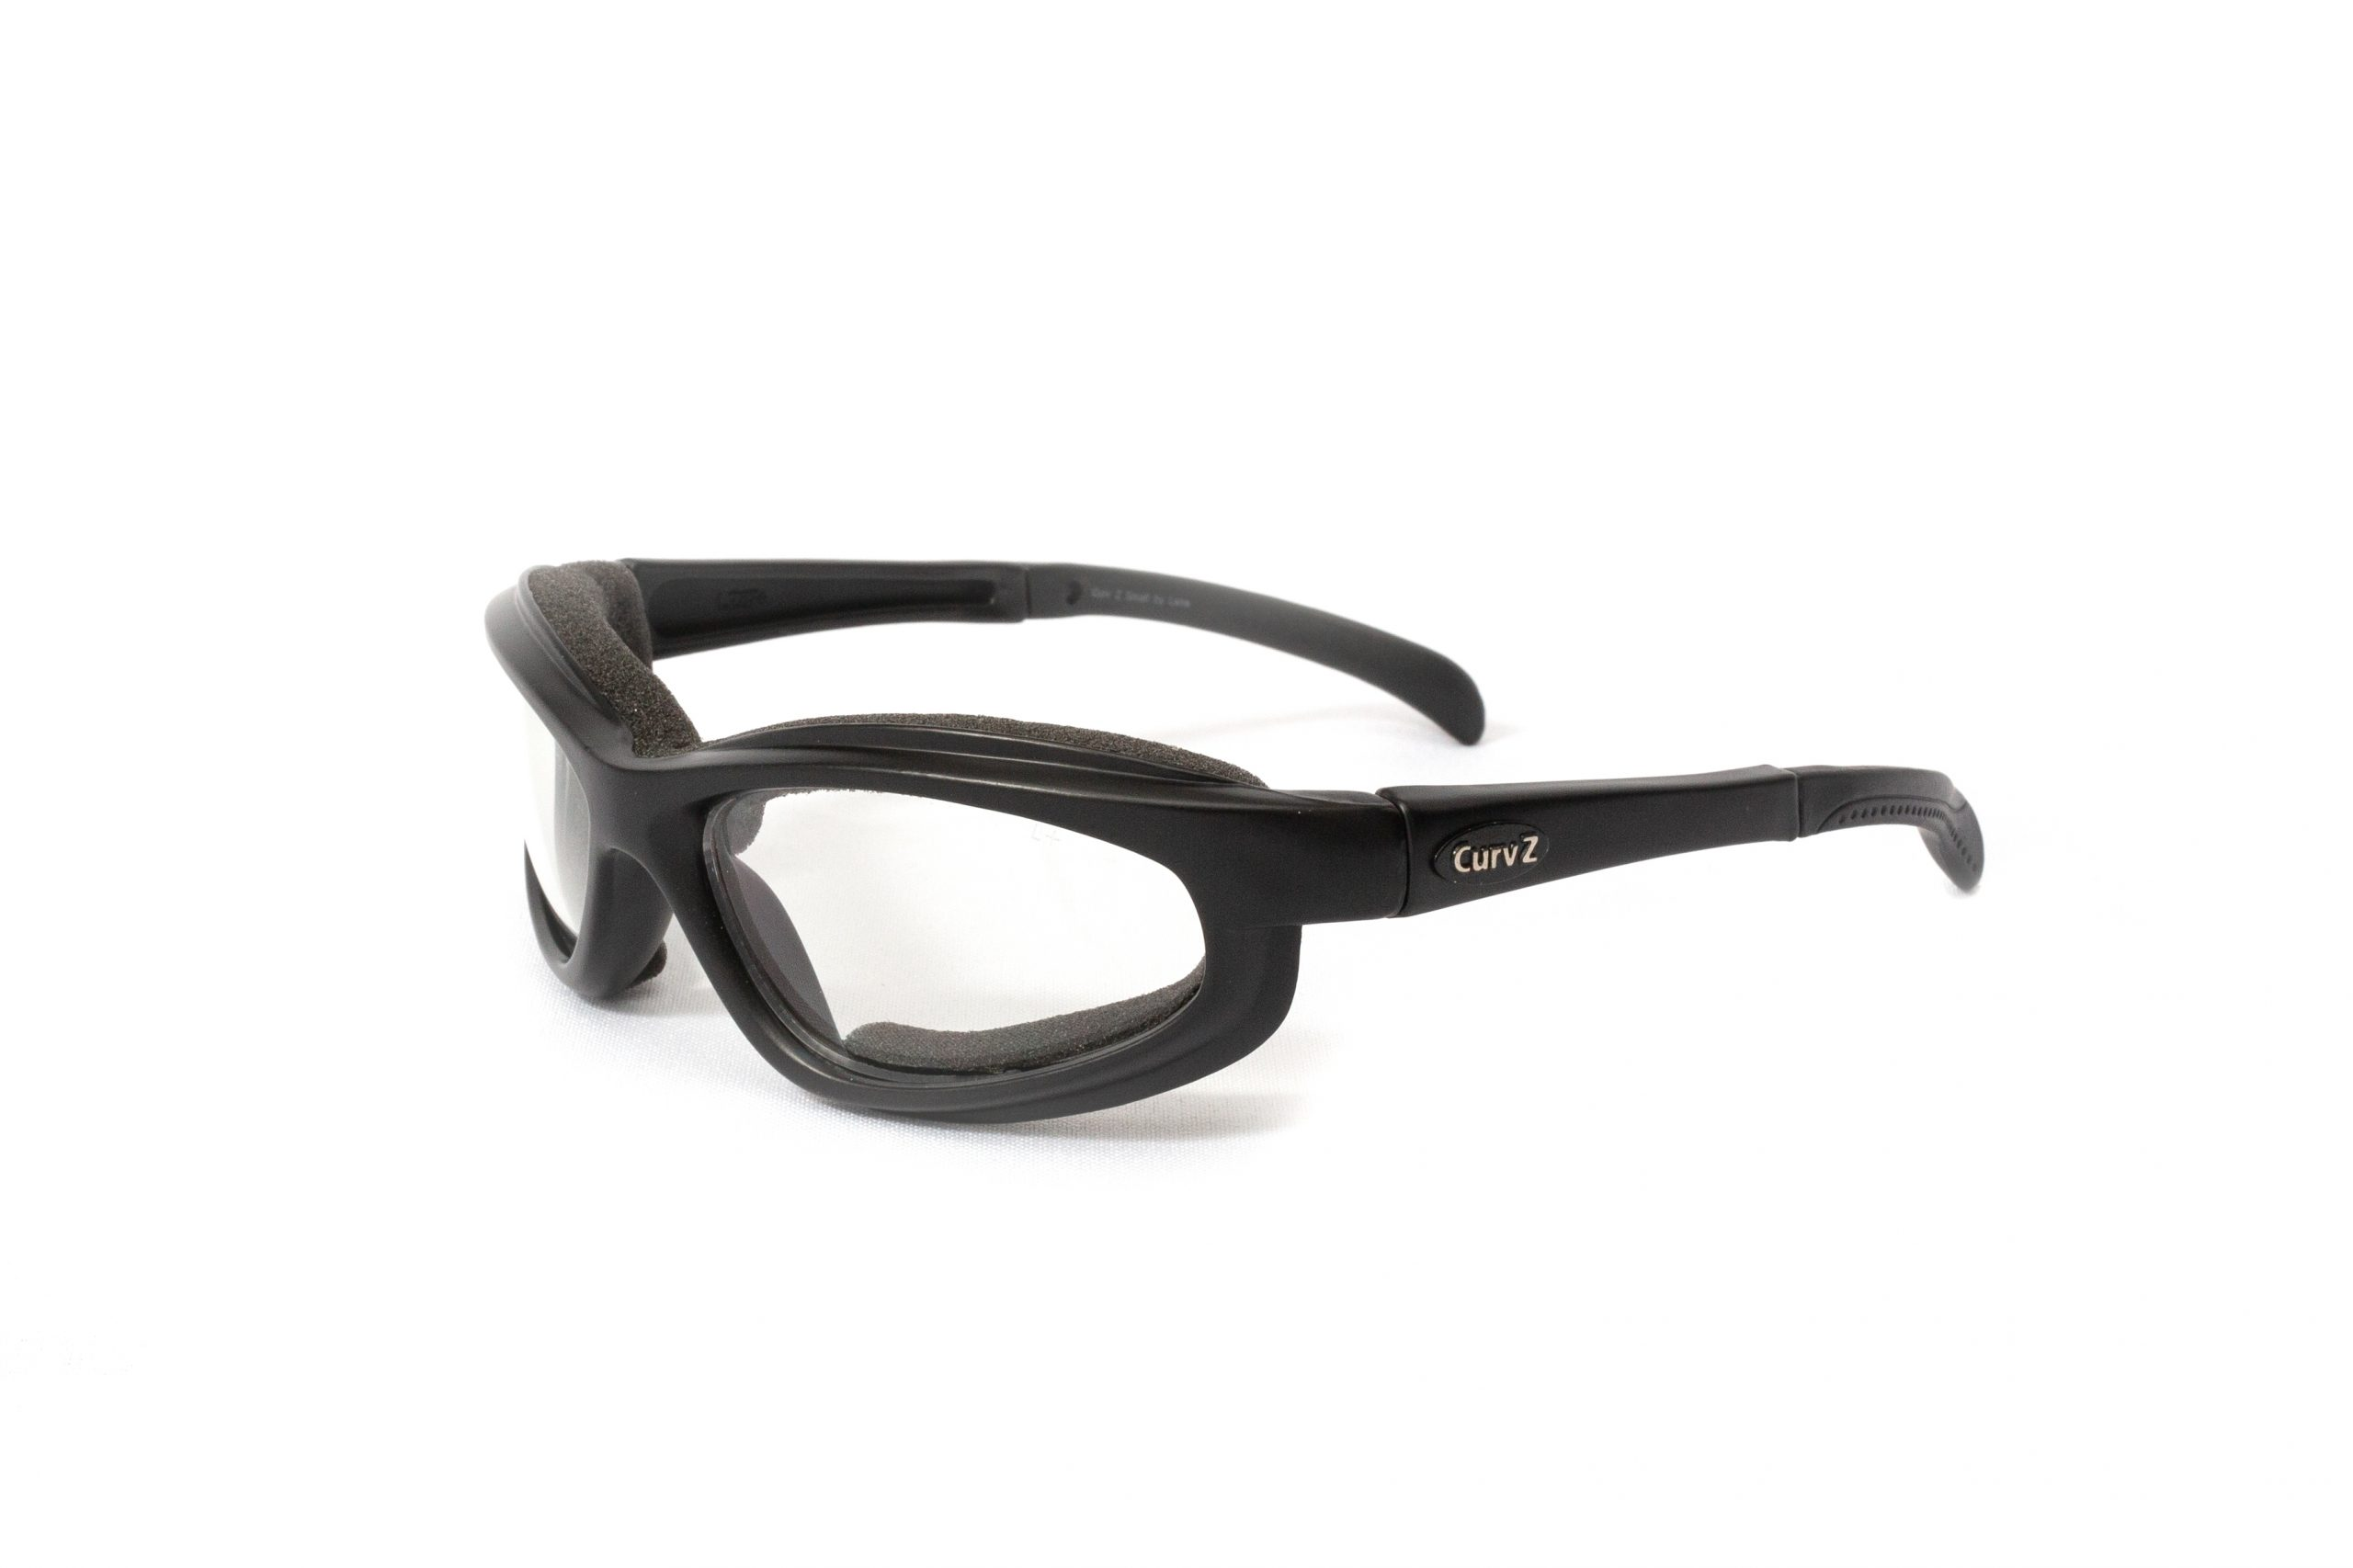 02-15 - CurvZ Small Clear Sunglasses in Matte Black Frames and Clear Lenses